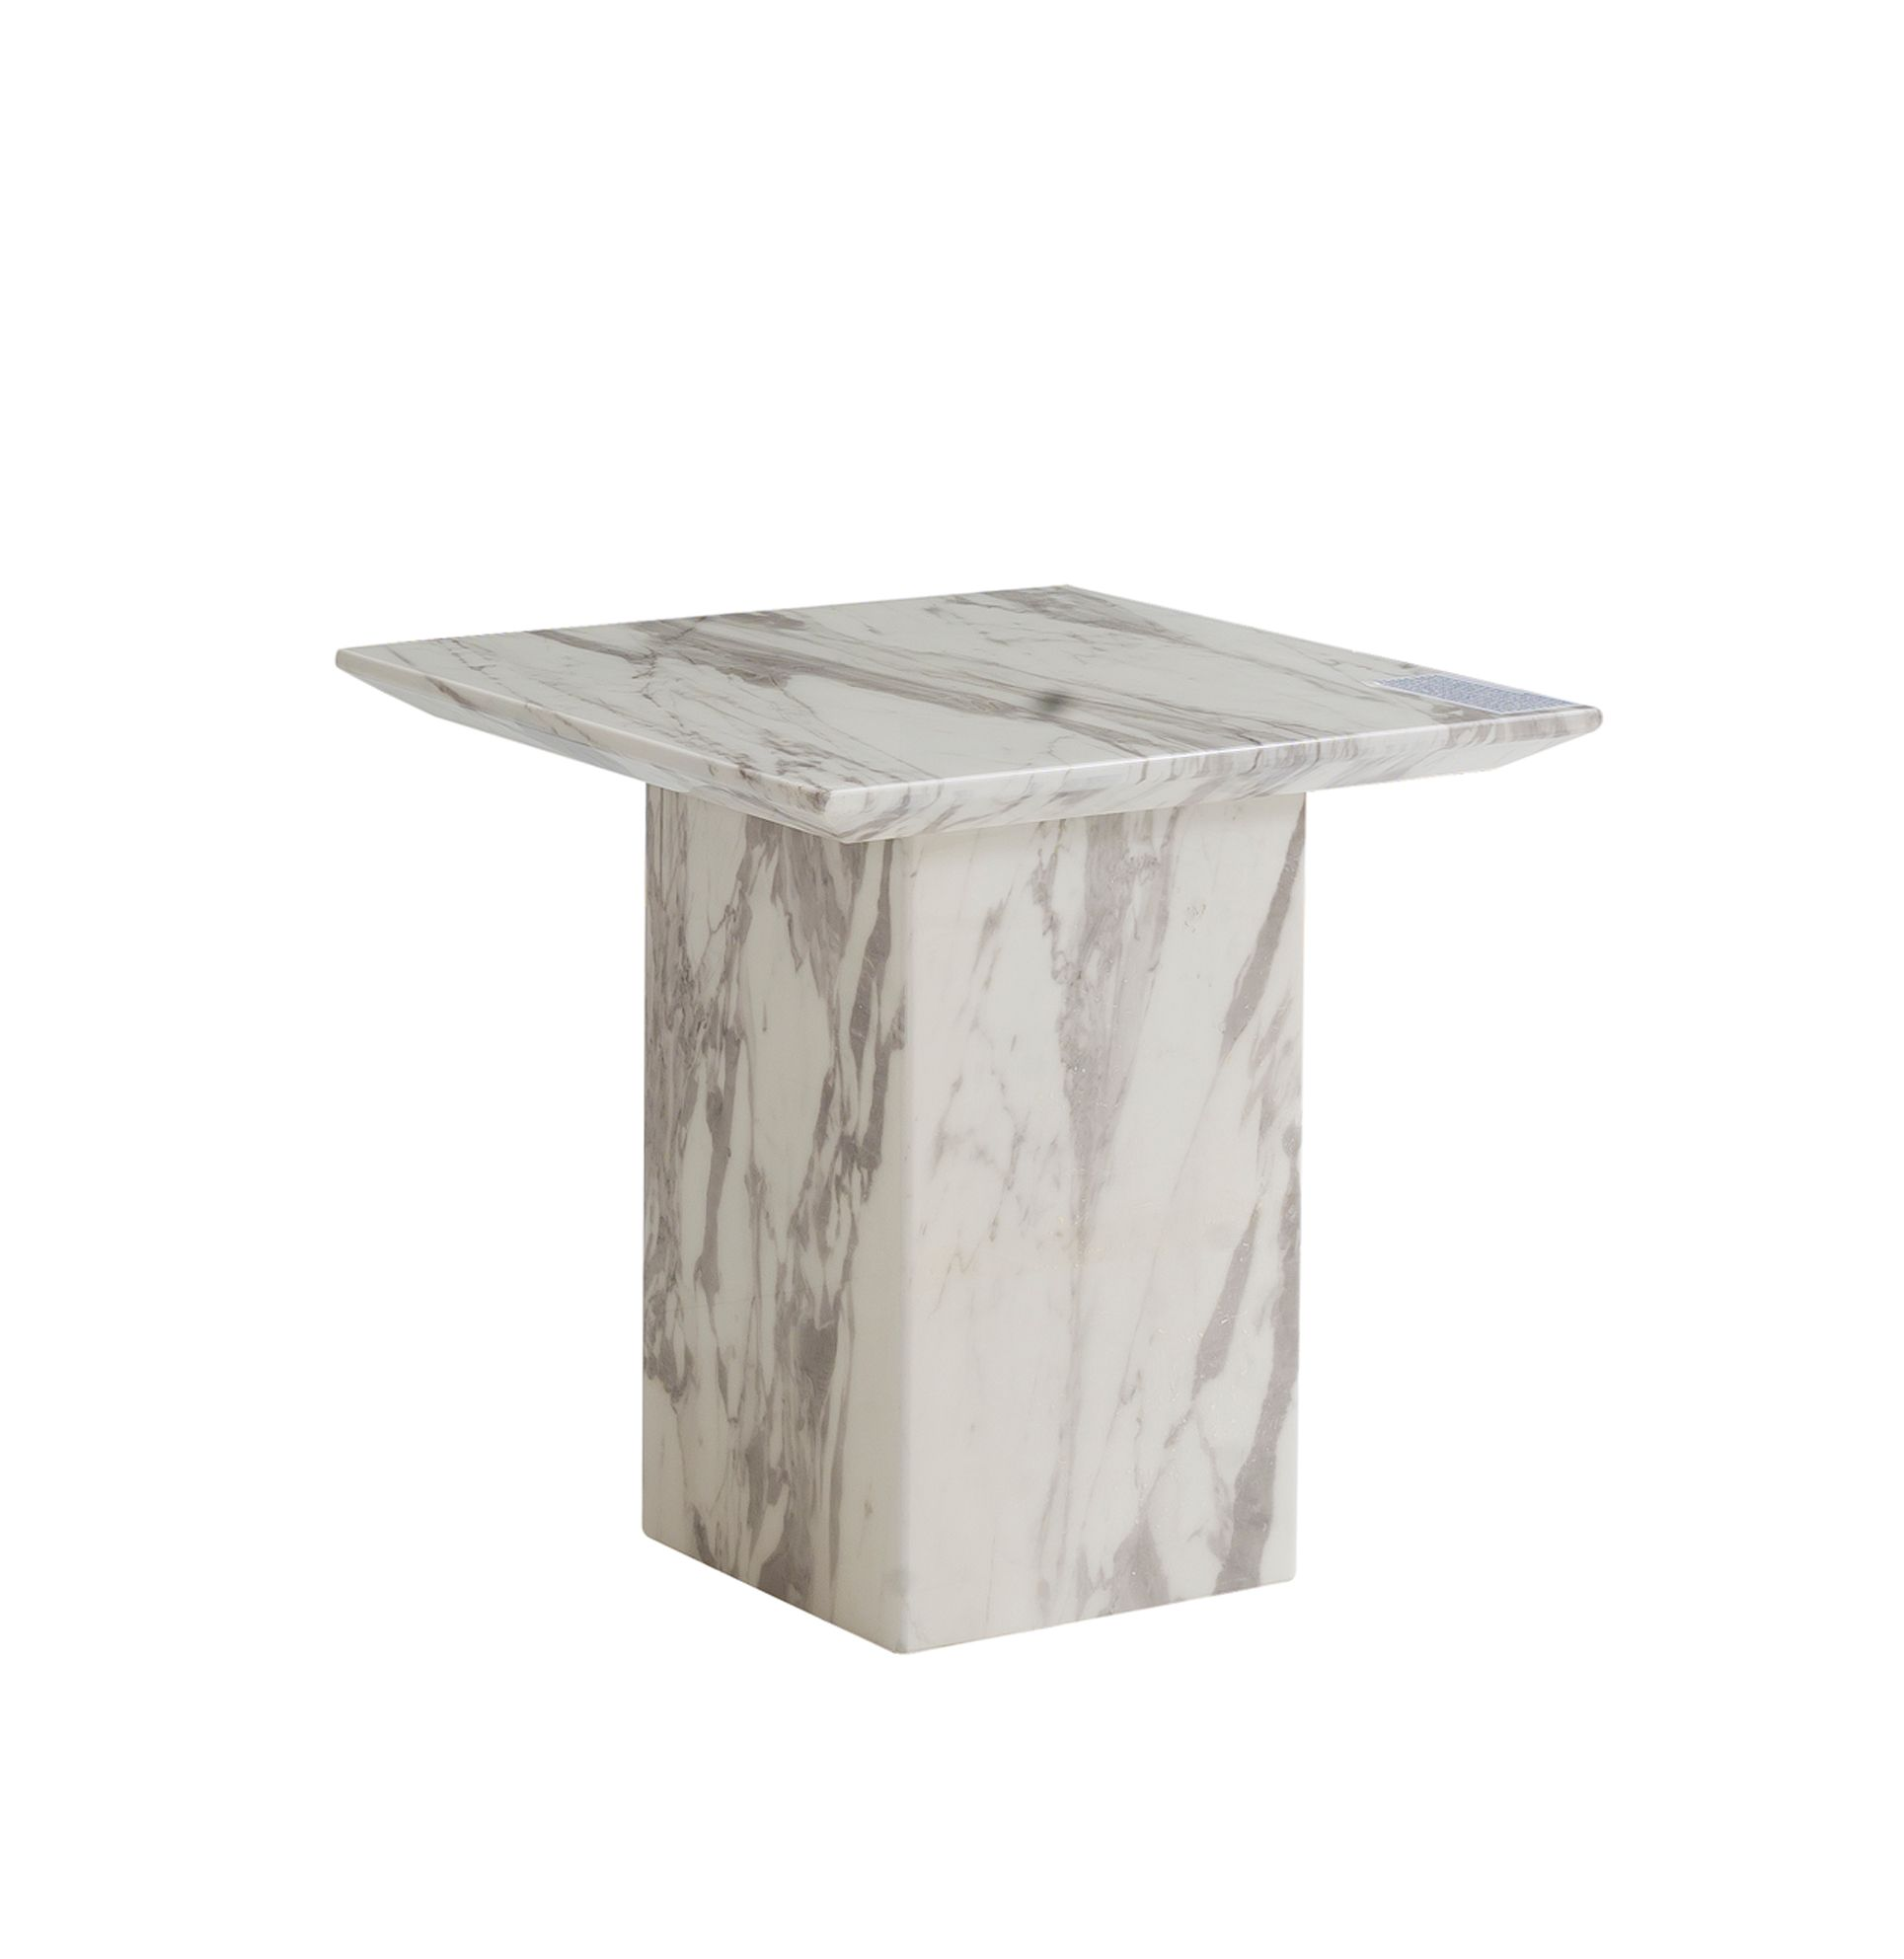 House of fraser coffee tables white coffee tables shop coffee tables house of fraser geotapseo Choice Image